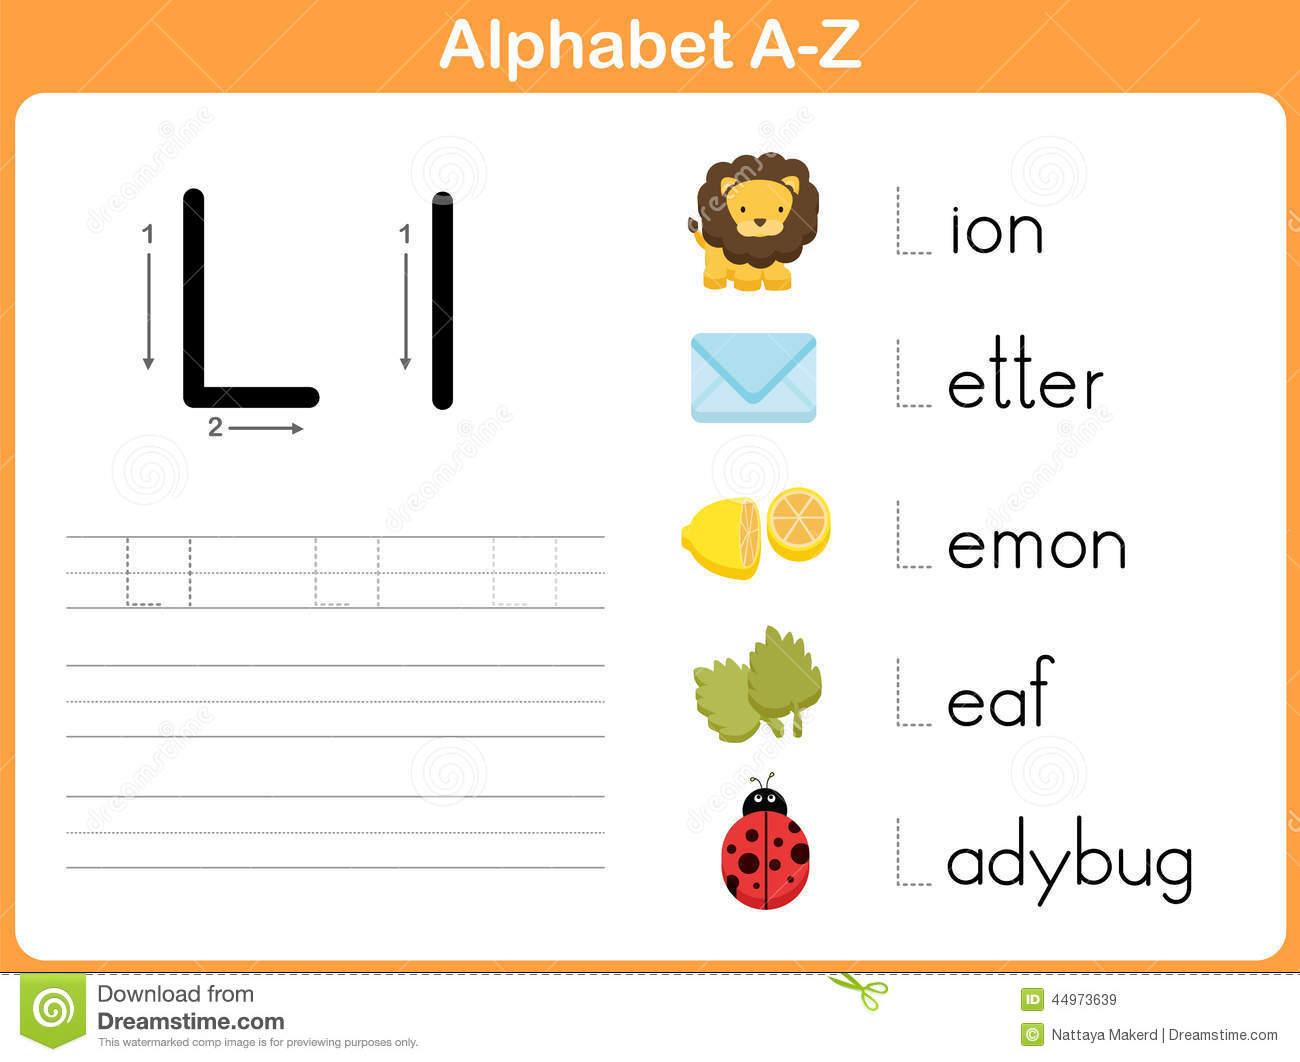 Alphabet Tracing Worksheet: Writing A-Z Stock Vector pertaining to A-Z Alphabet Tracing Worksheets